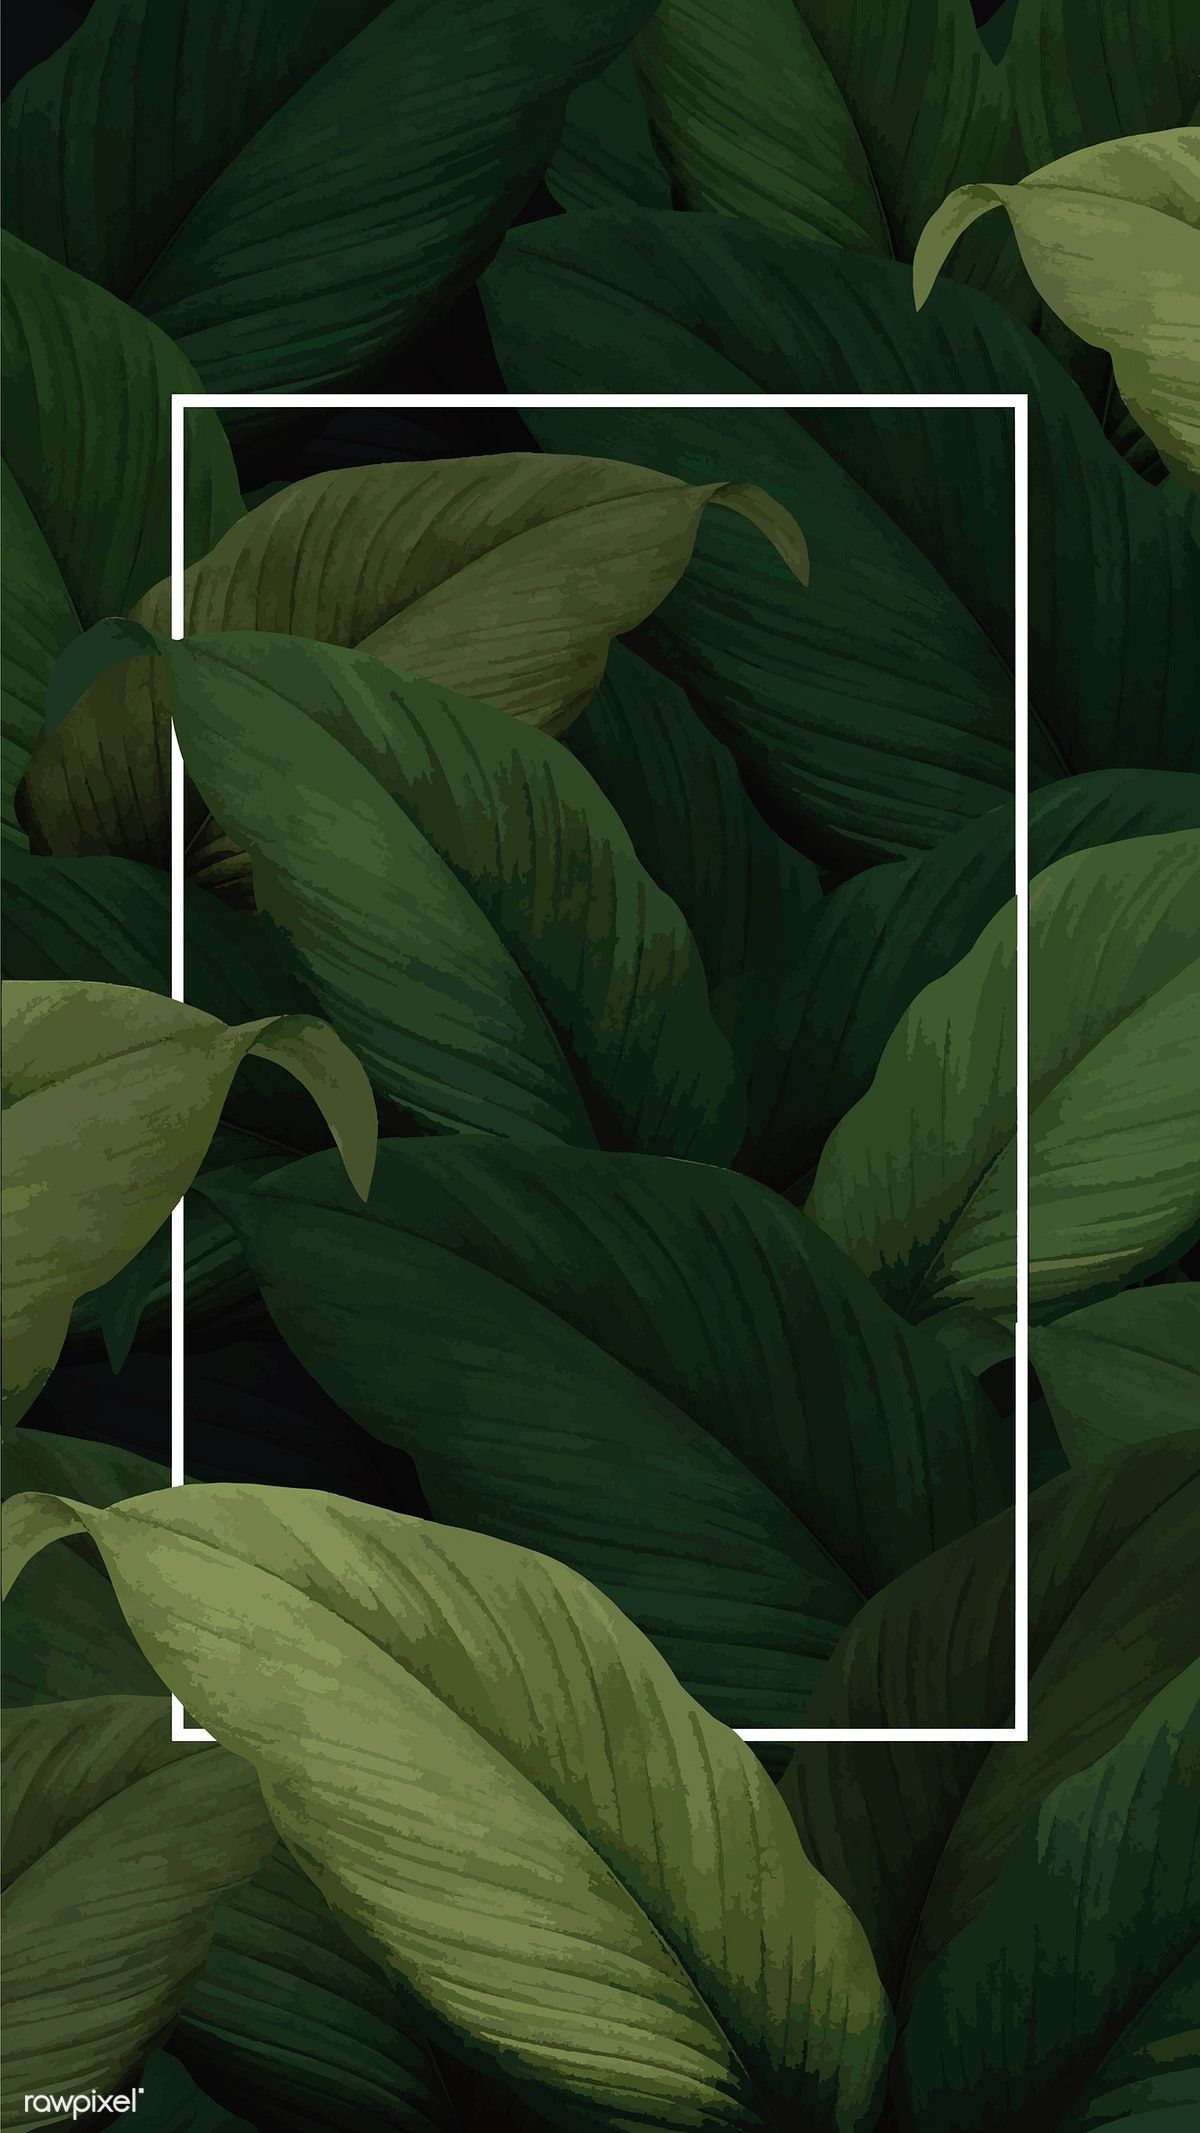 Green Tropical Leaves Patterned Poster Vector 4k Iphone And Mobile Phone Wallpaper Premium Image B Tropical Leaves Pattern Tropical Leaves Instagram Pattern